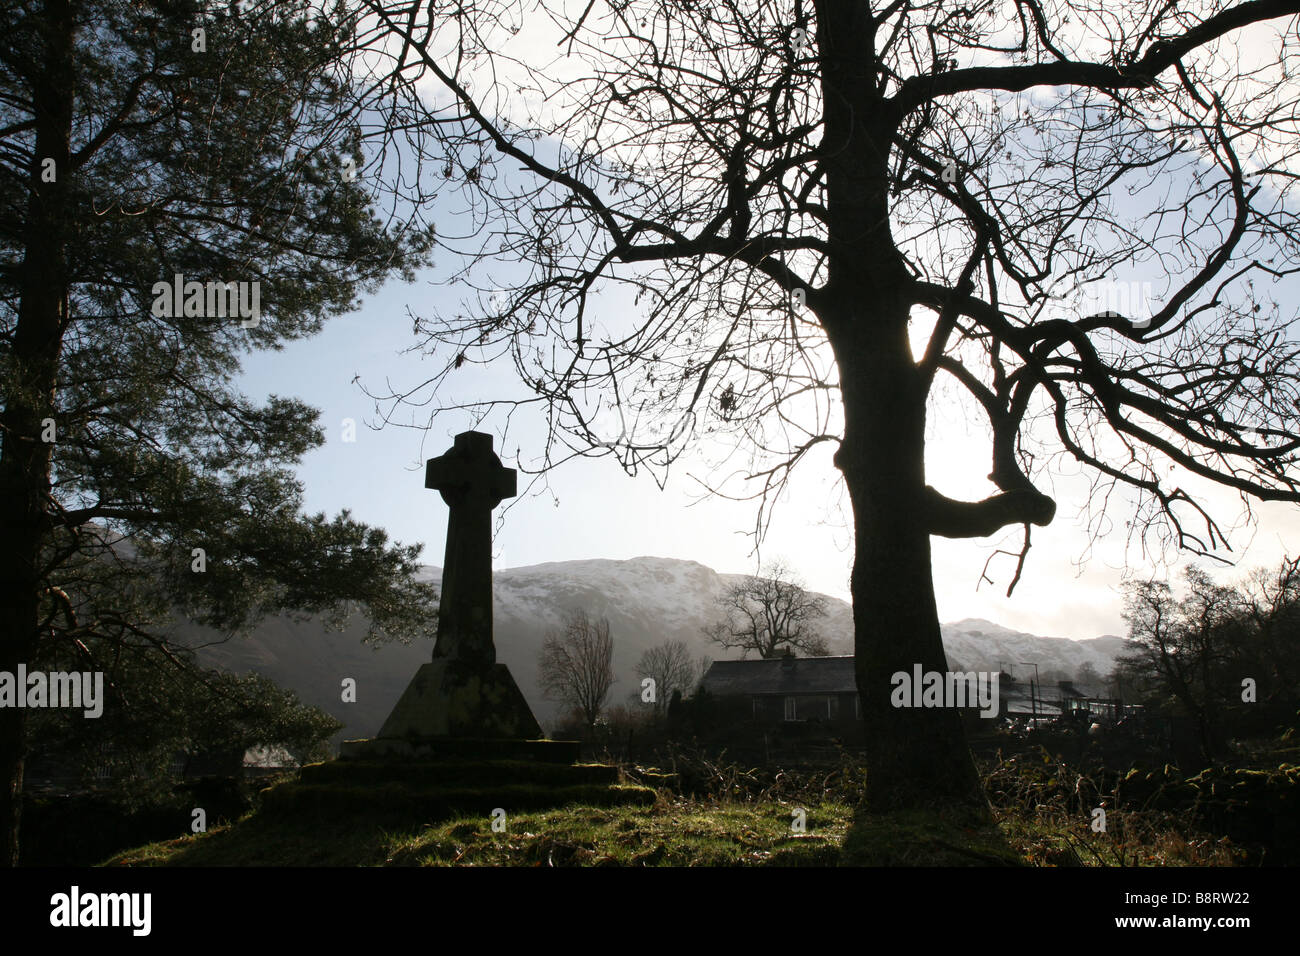 Grave stone and tree in morning light - Stock Image